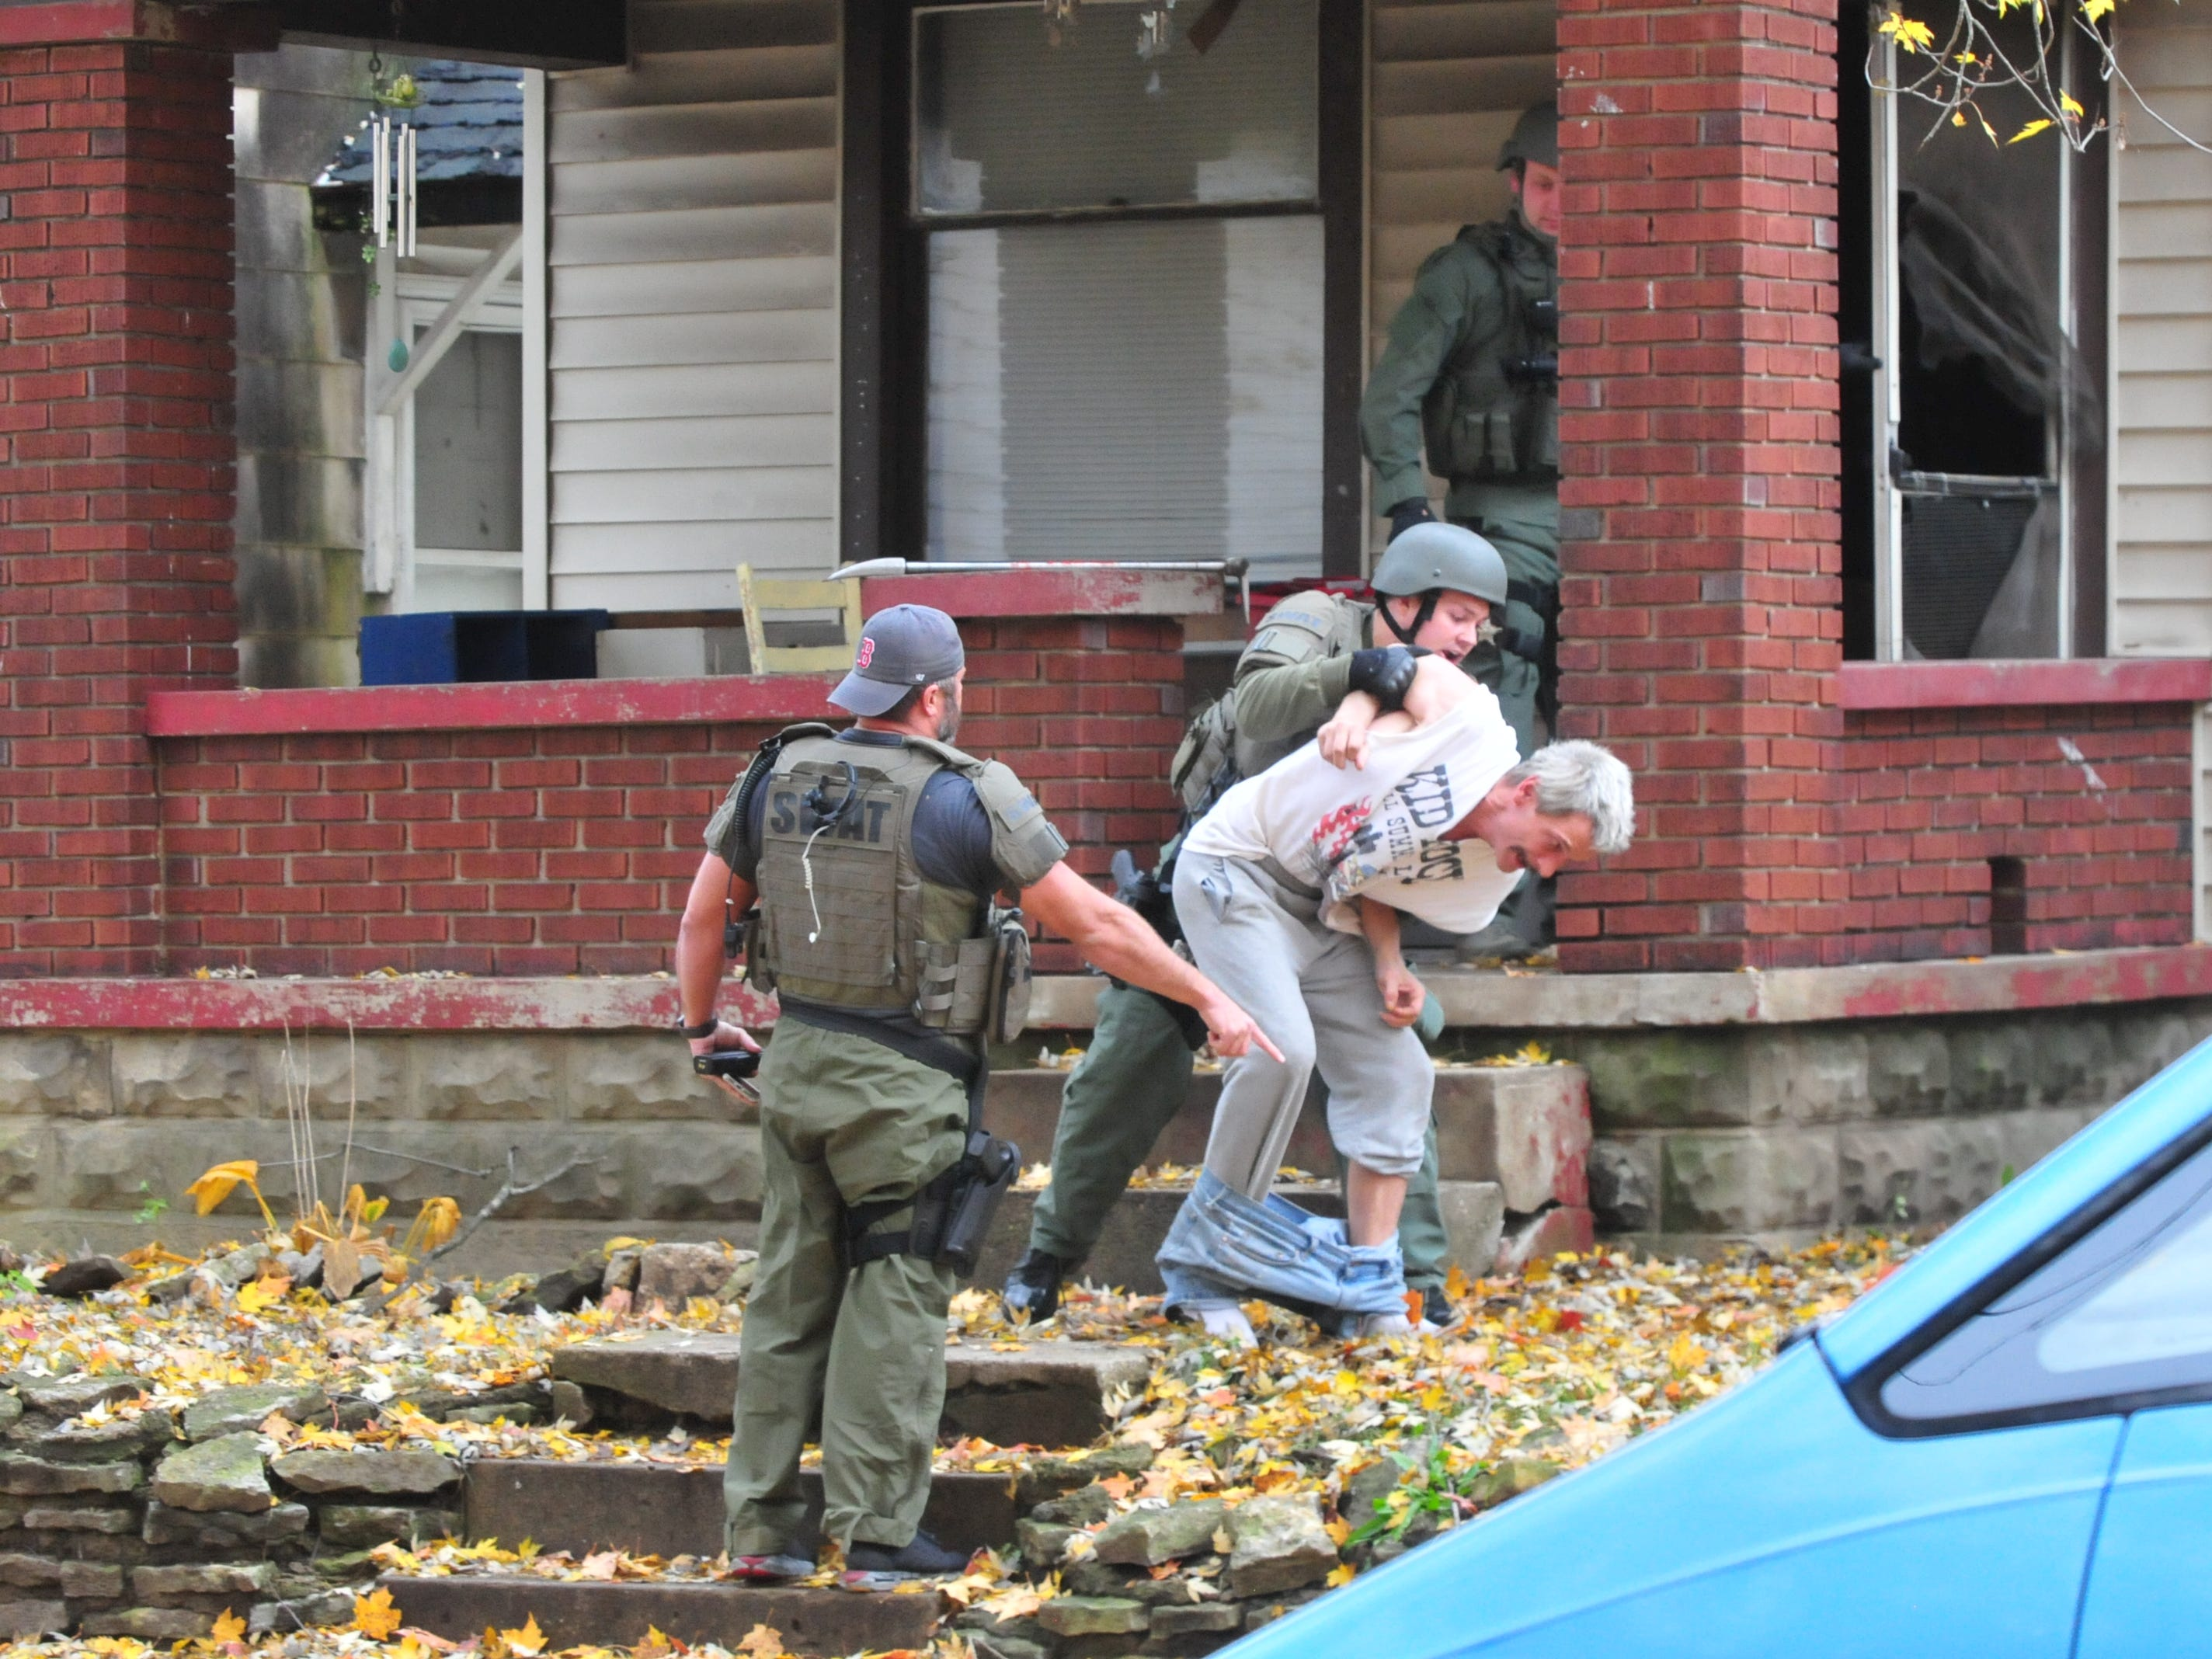 James Hamilton is ordered onto his stomach outside 219 N. 16th St. during a SWAT raid Monday.